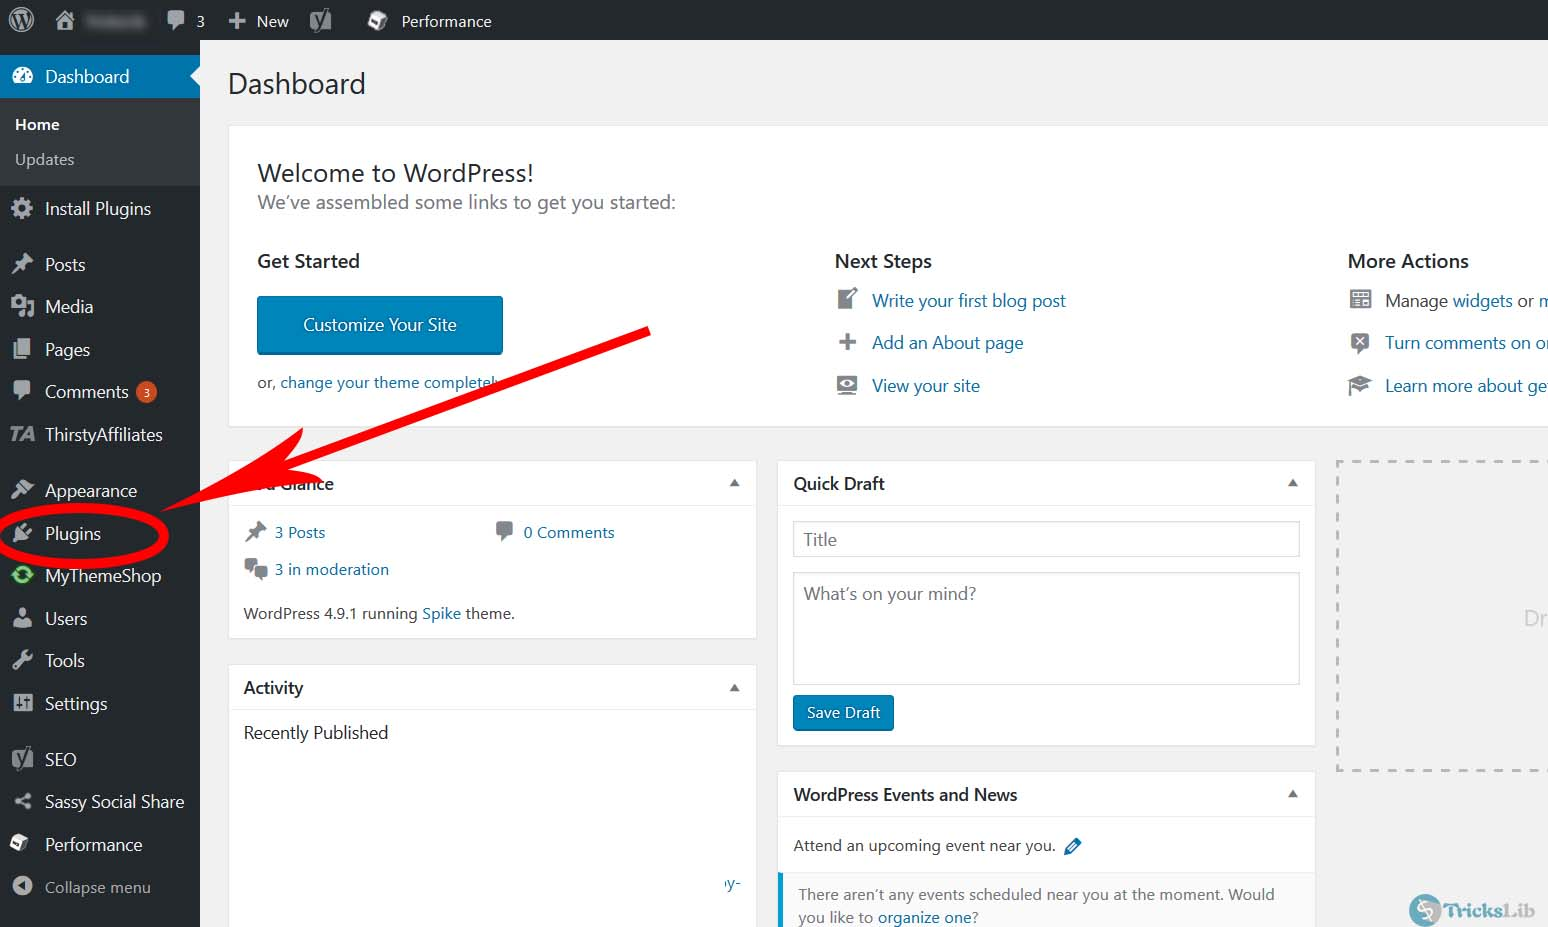 How To Install Plugins In WordPress - 3 Possible Methods - T